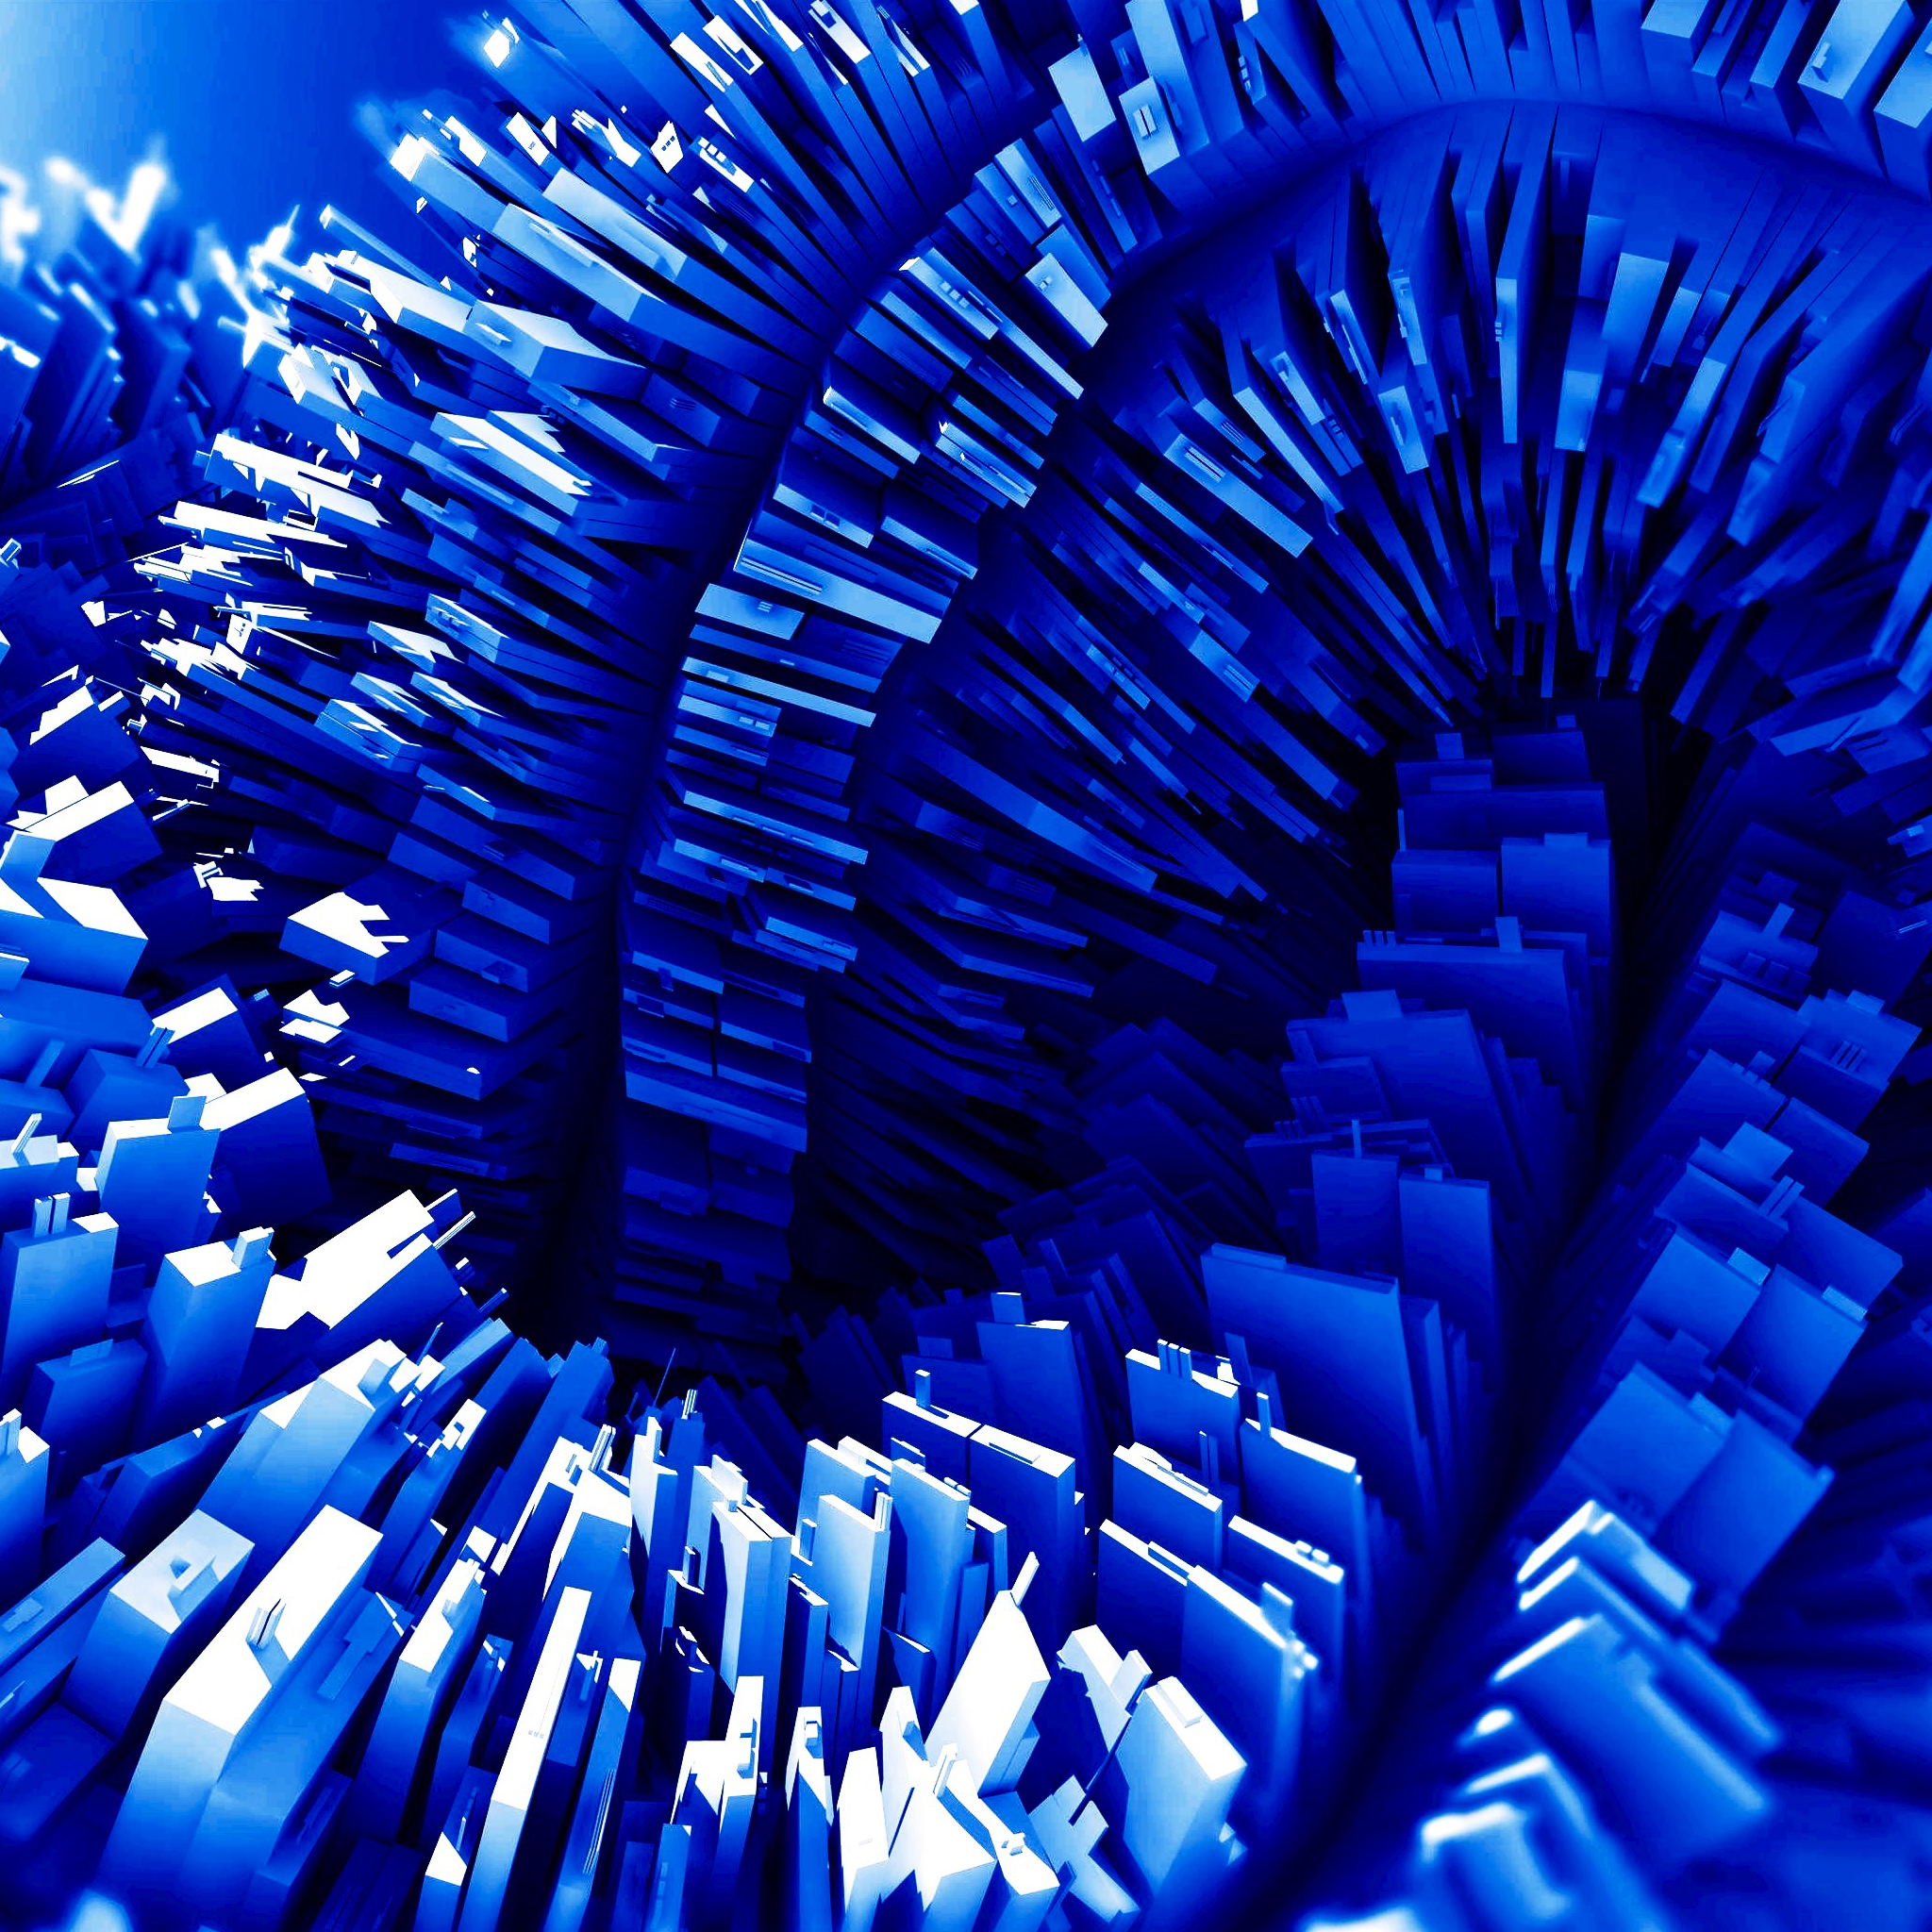 3D Blue 3Wallpapers ipad Retina 3D Blue   iPad Retina